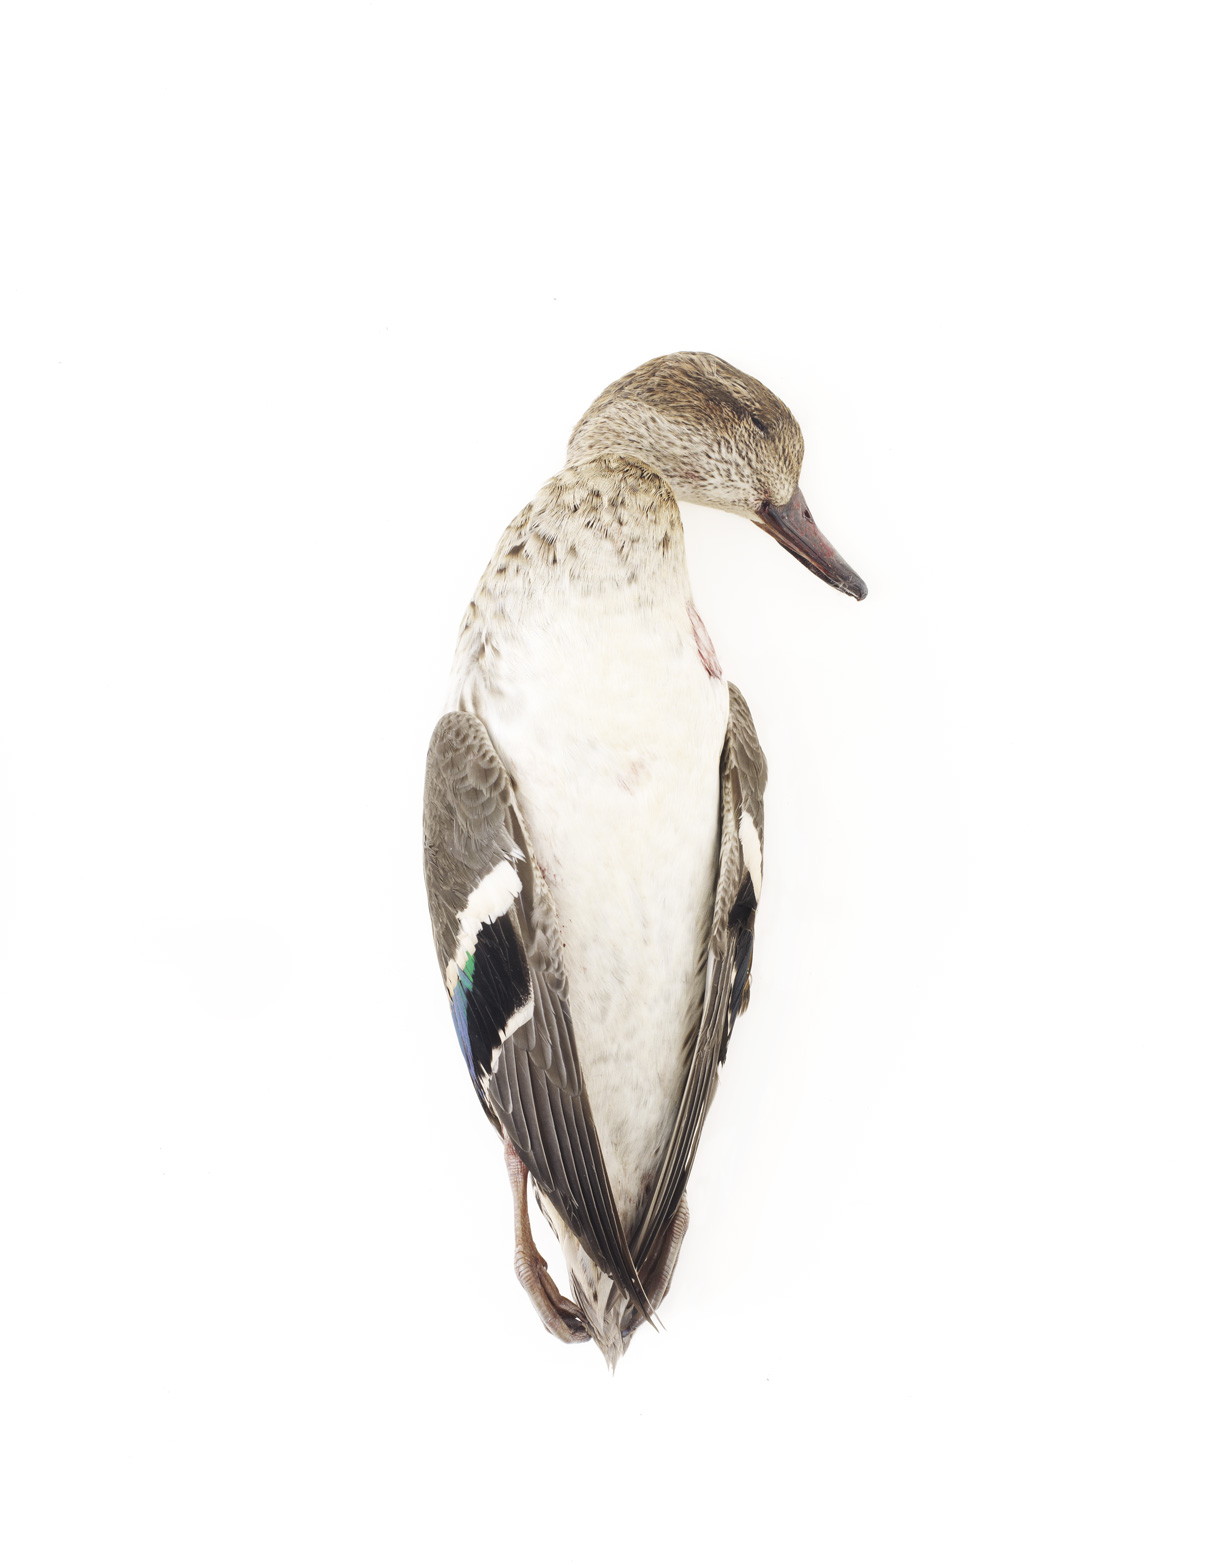 "Teal Duck 8    £300.00    Giclee fine art print, signed limited edition of 19    Size: 10"" x 8"""